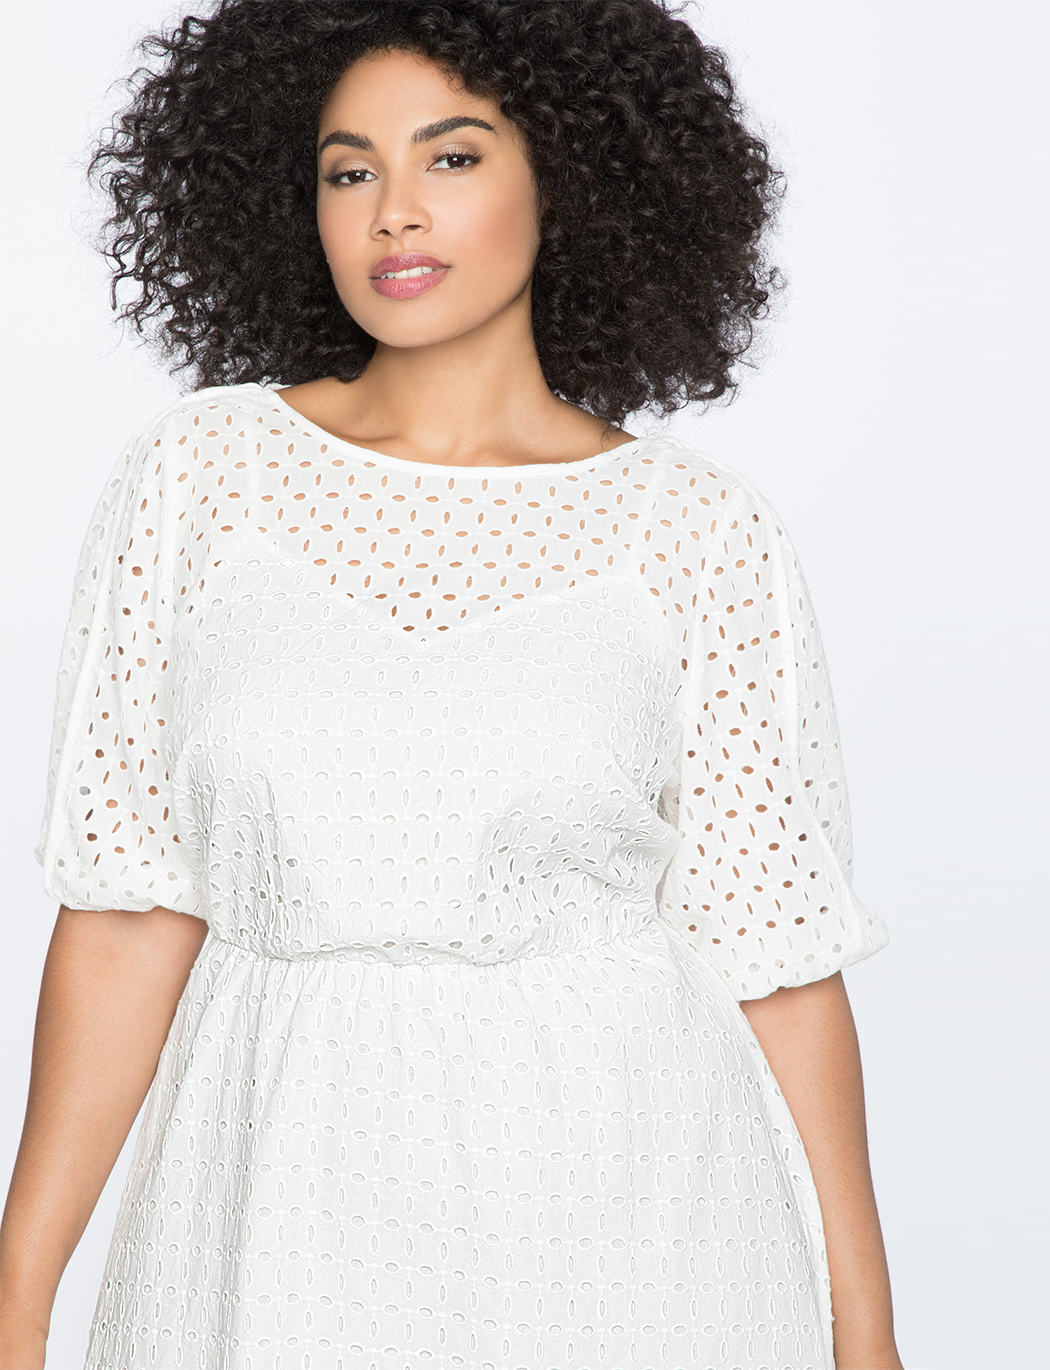 Boatneck Eyelet Dress with Piping | Women\'s Plus Size Dresses | ELOQUII